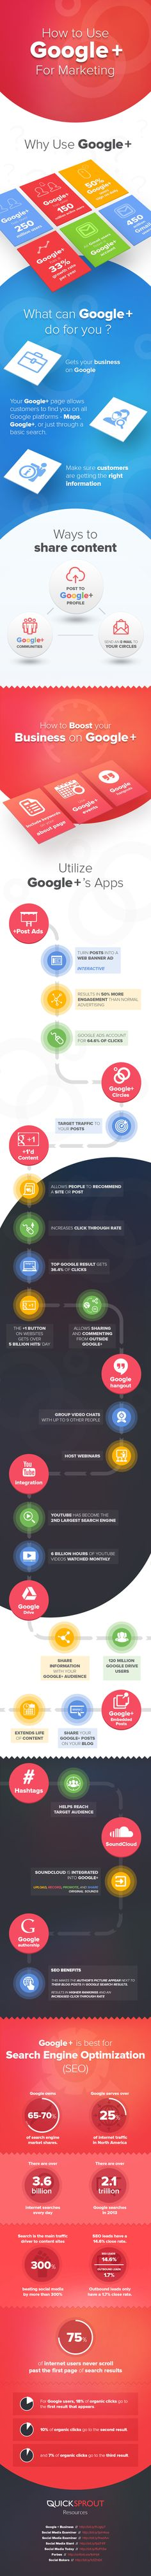 "SOCIAL MEDIA - ""How to Use Google Plus for Marketing [Infographic] - QuickSprout""."